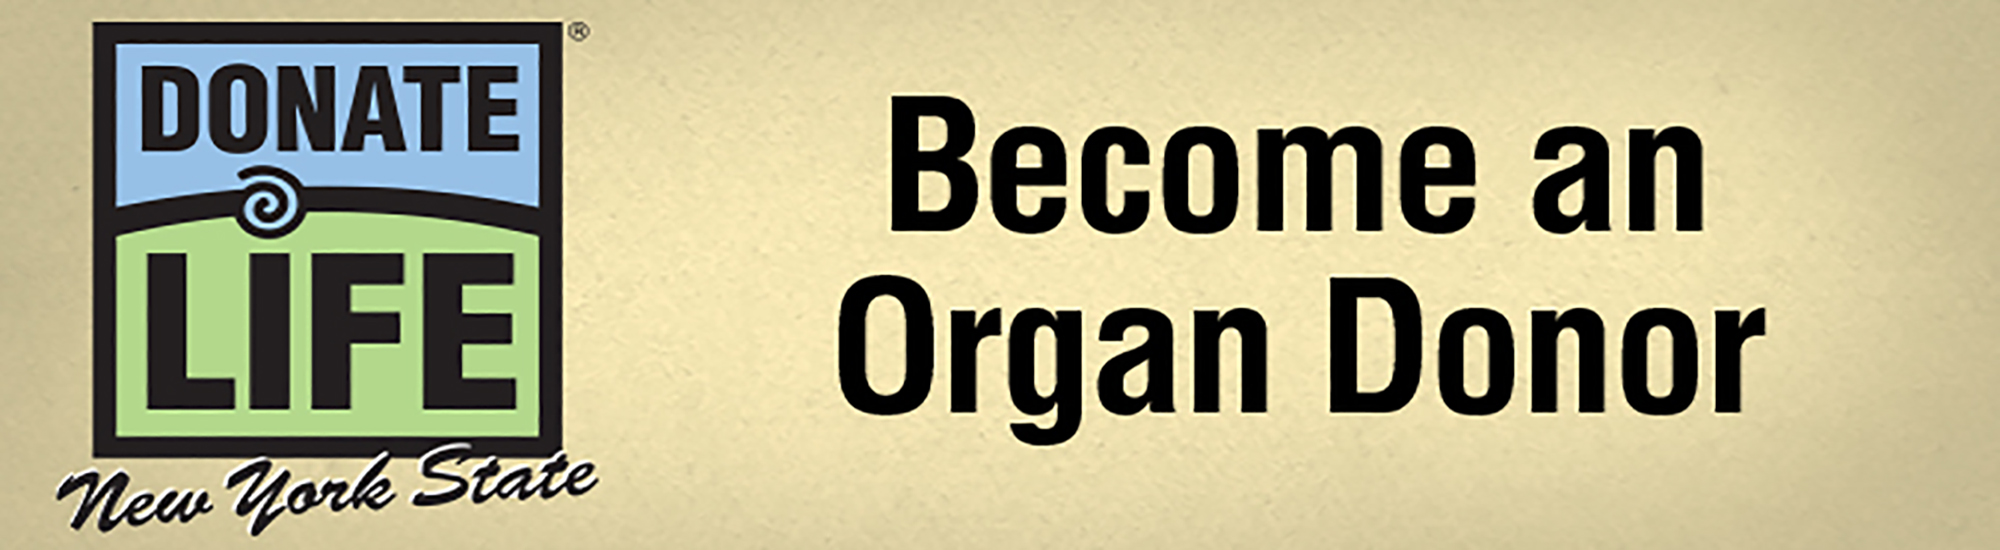 Donate Life.  Become an Organ Donor